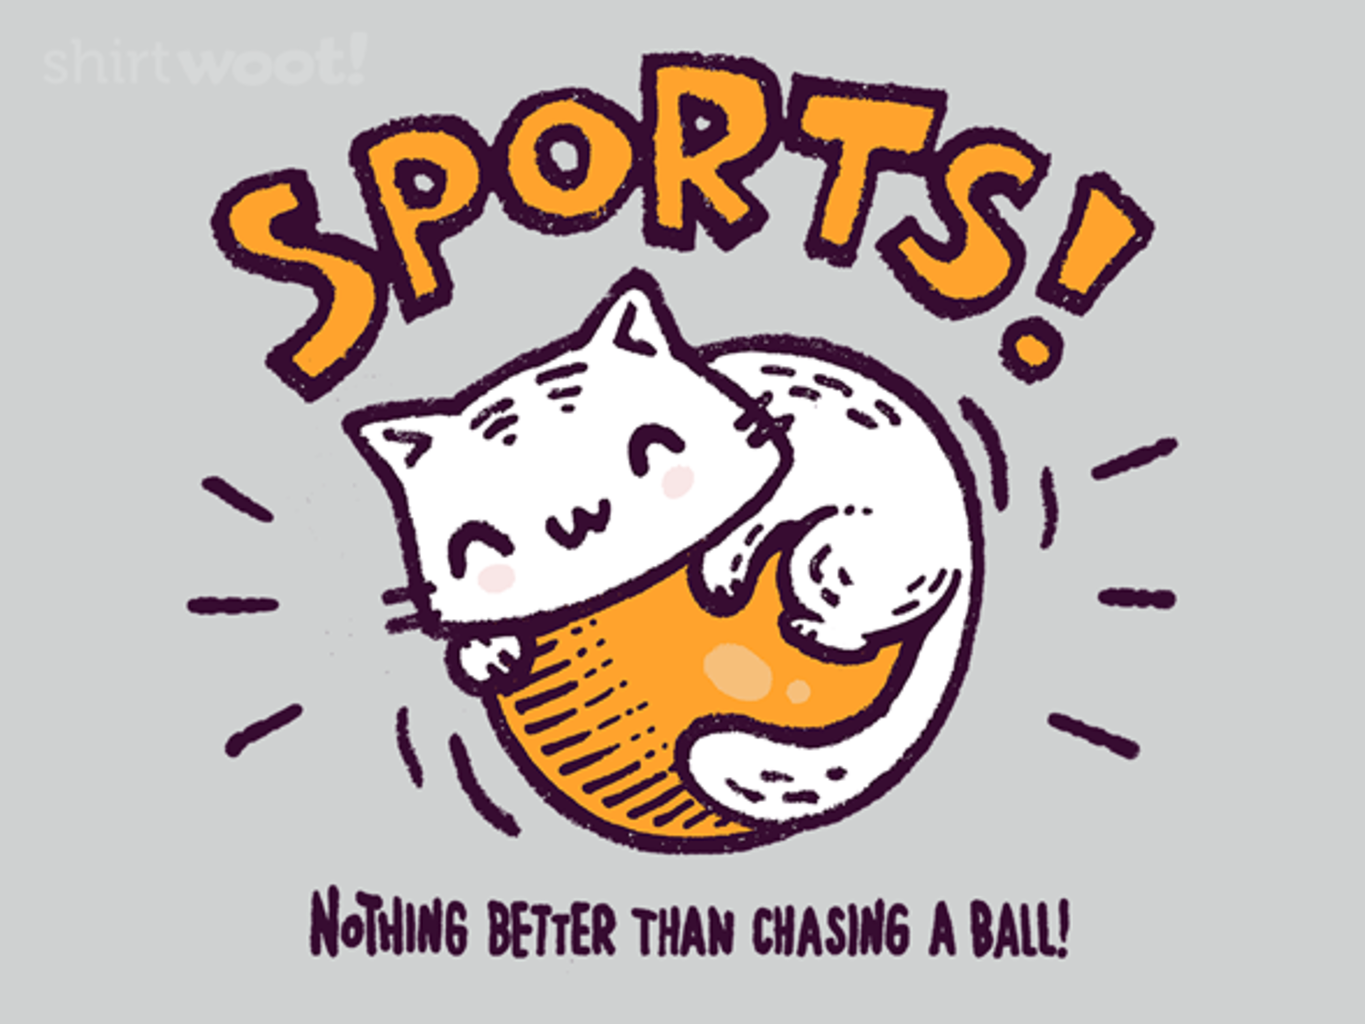 Woot!: Nothing Better than Chasing a Ball!